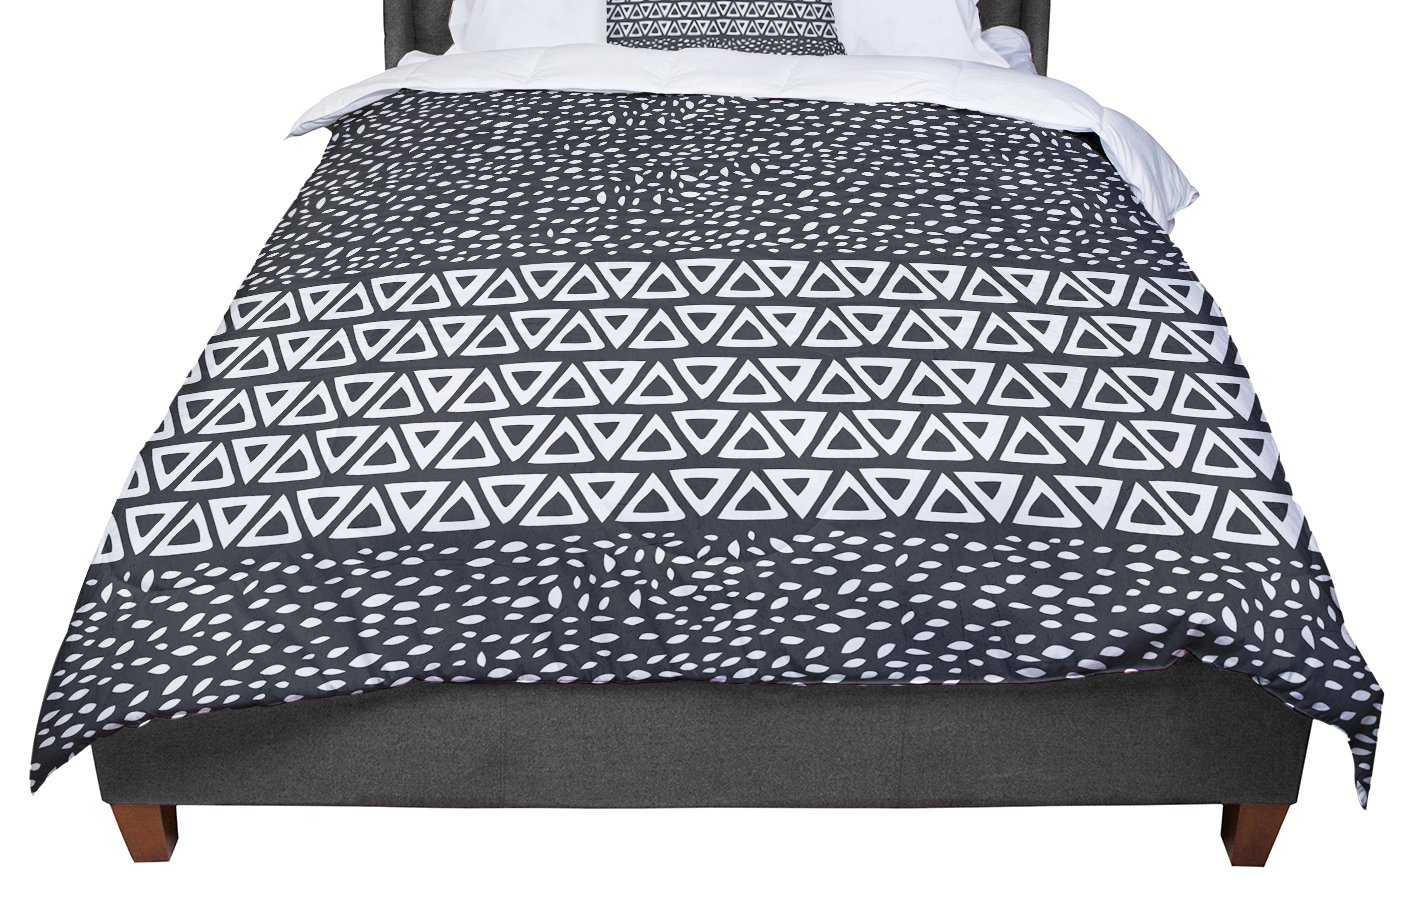 68 X 88 KESS InHouse Pom Graphic Design Going Tribal Gray Green Twin Comforter